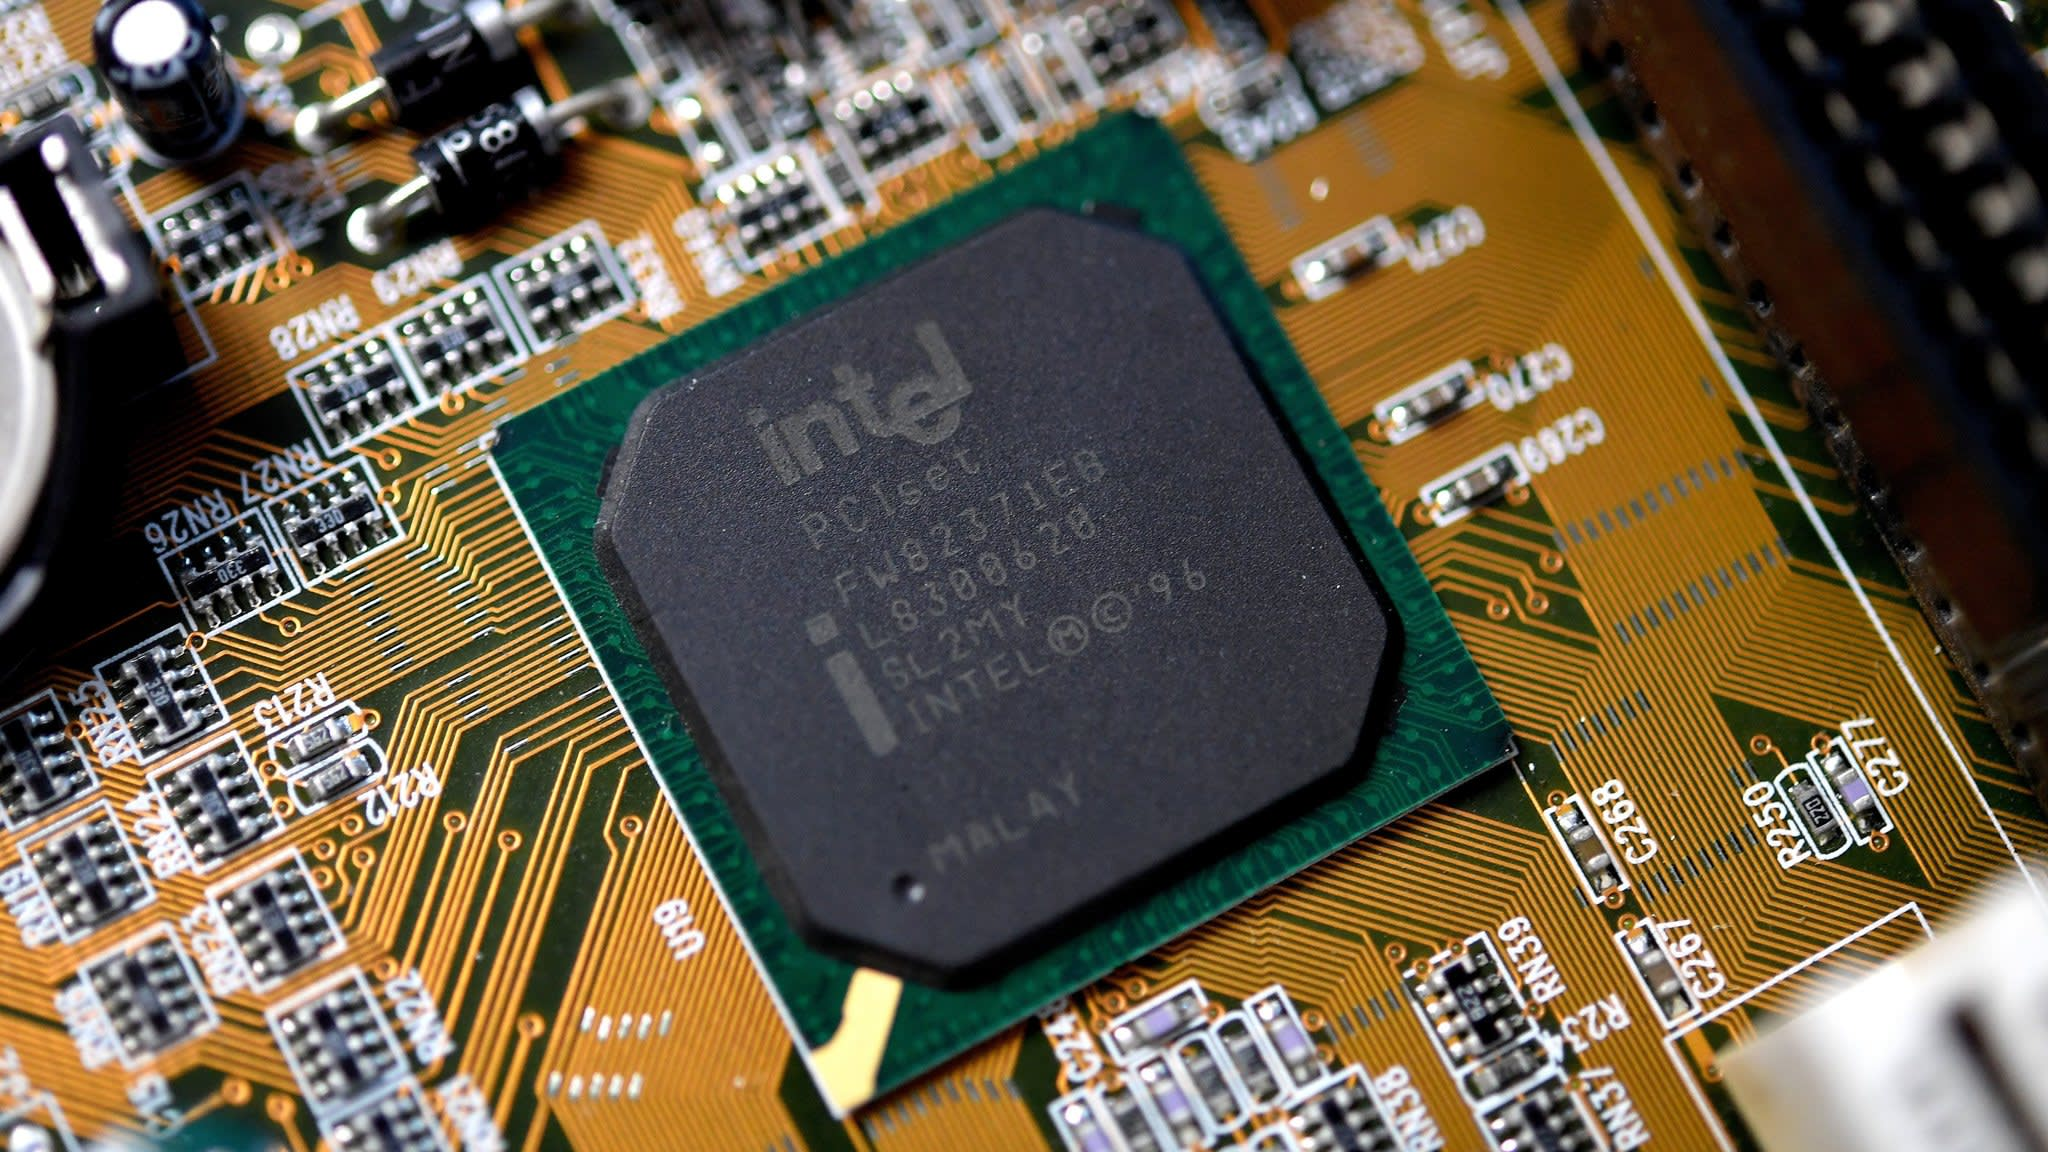 Intel reveals new microchip security flaw